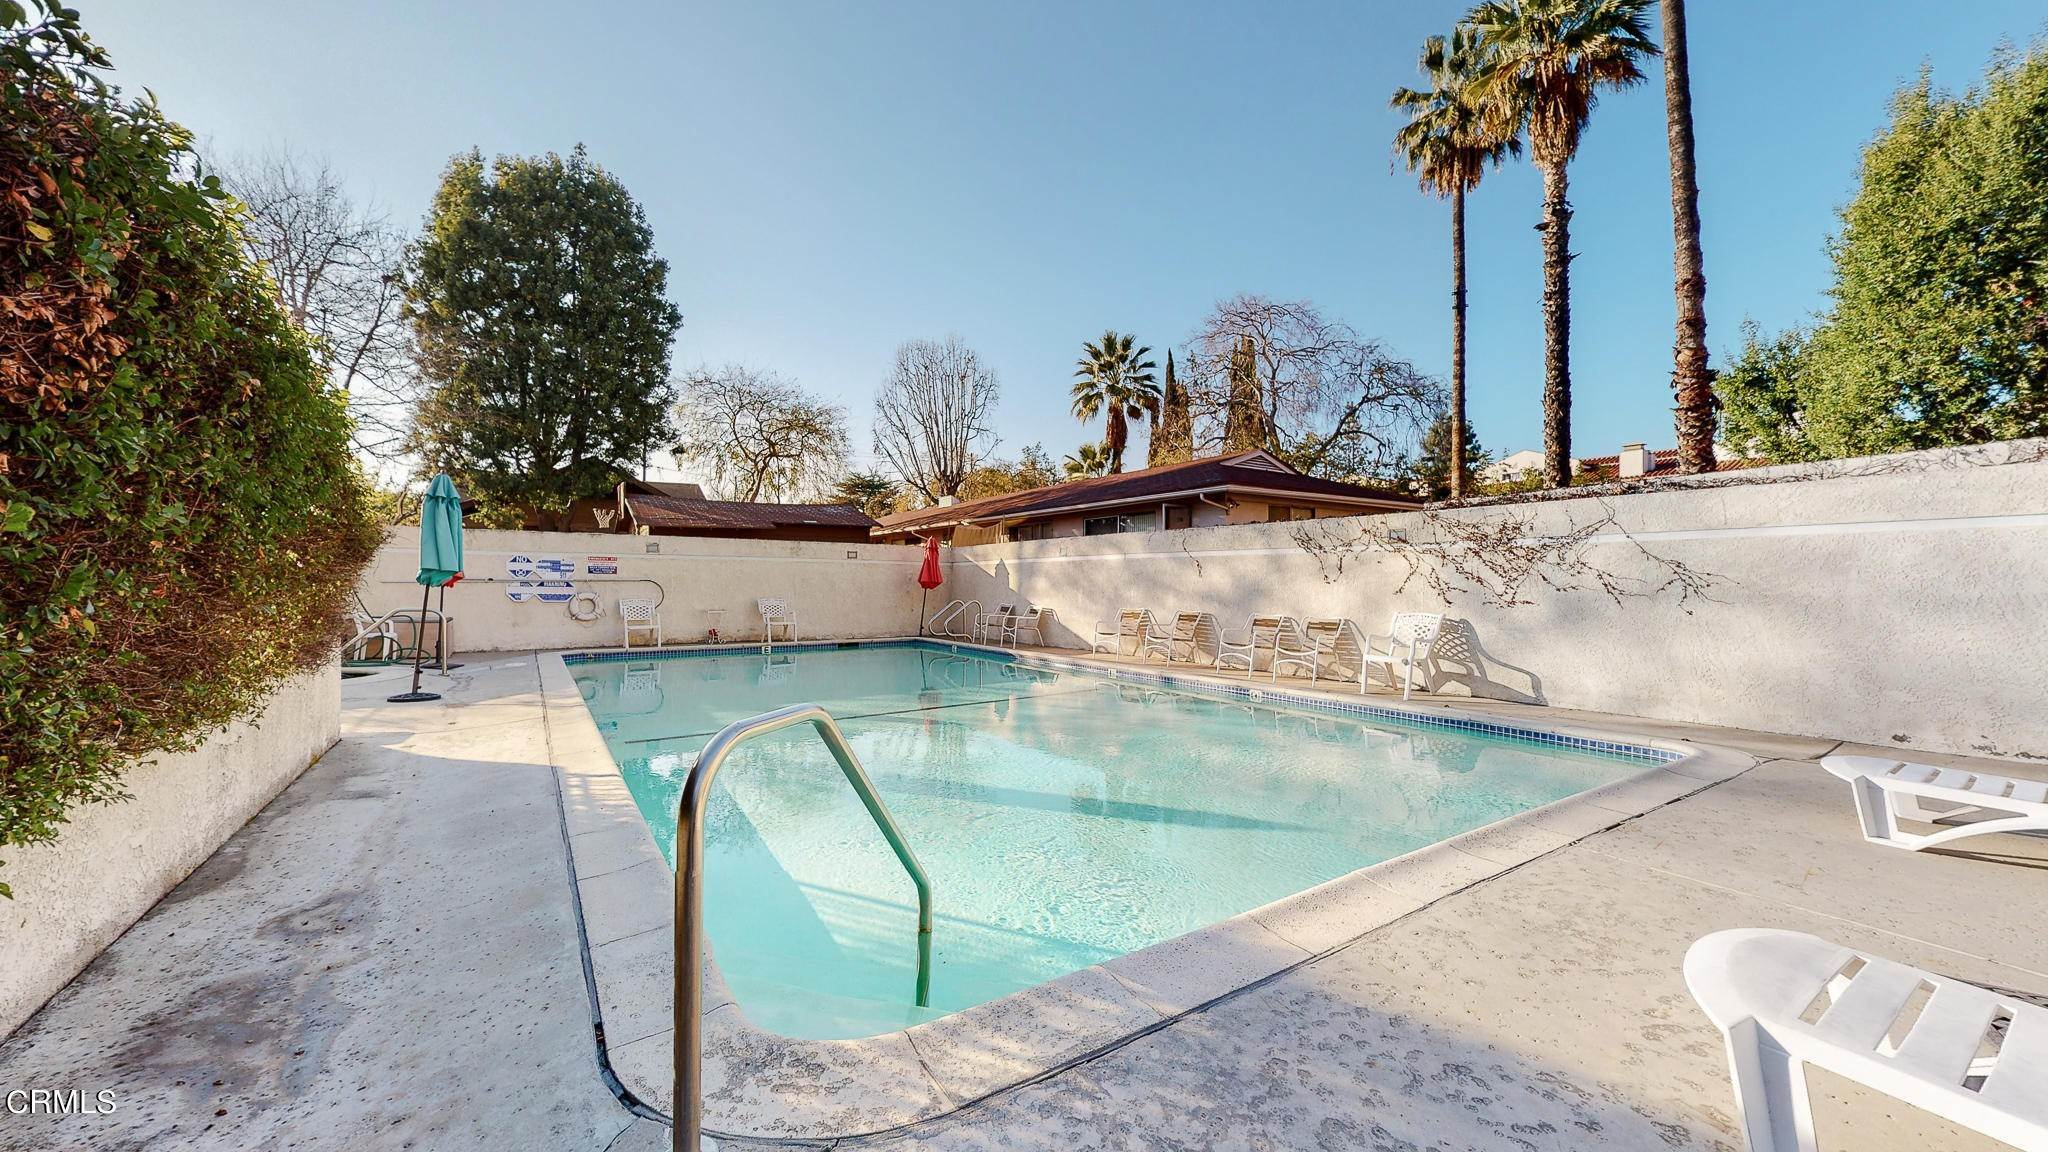 37. Condominiums for Sale at 235 South Holliston Avenue #113 235 South Holliston Avenue Pasadena, California 91106 United States